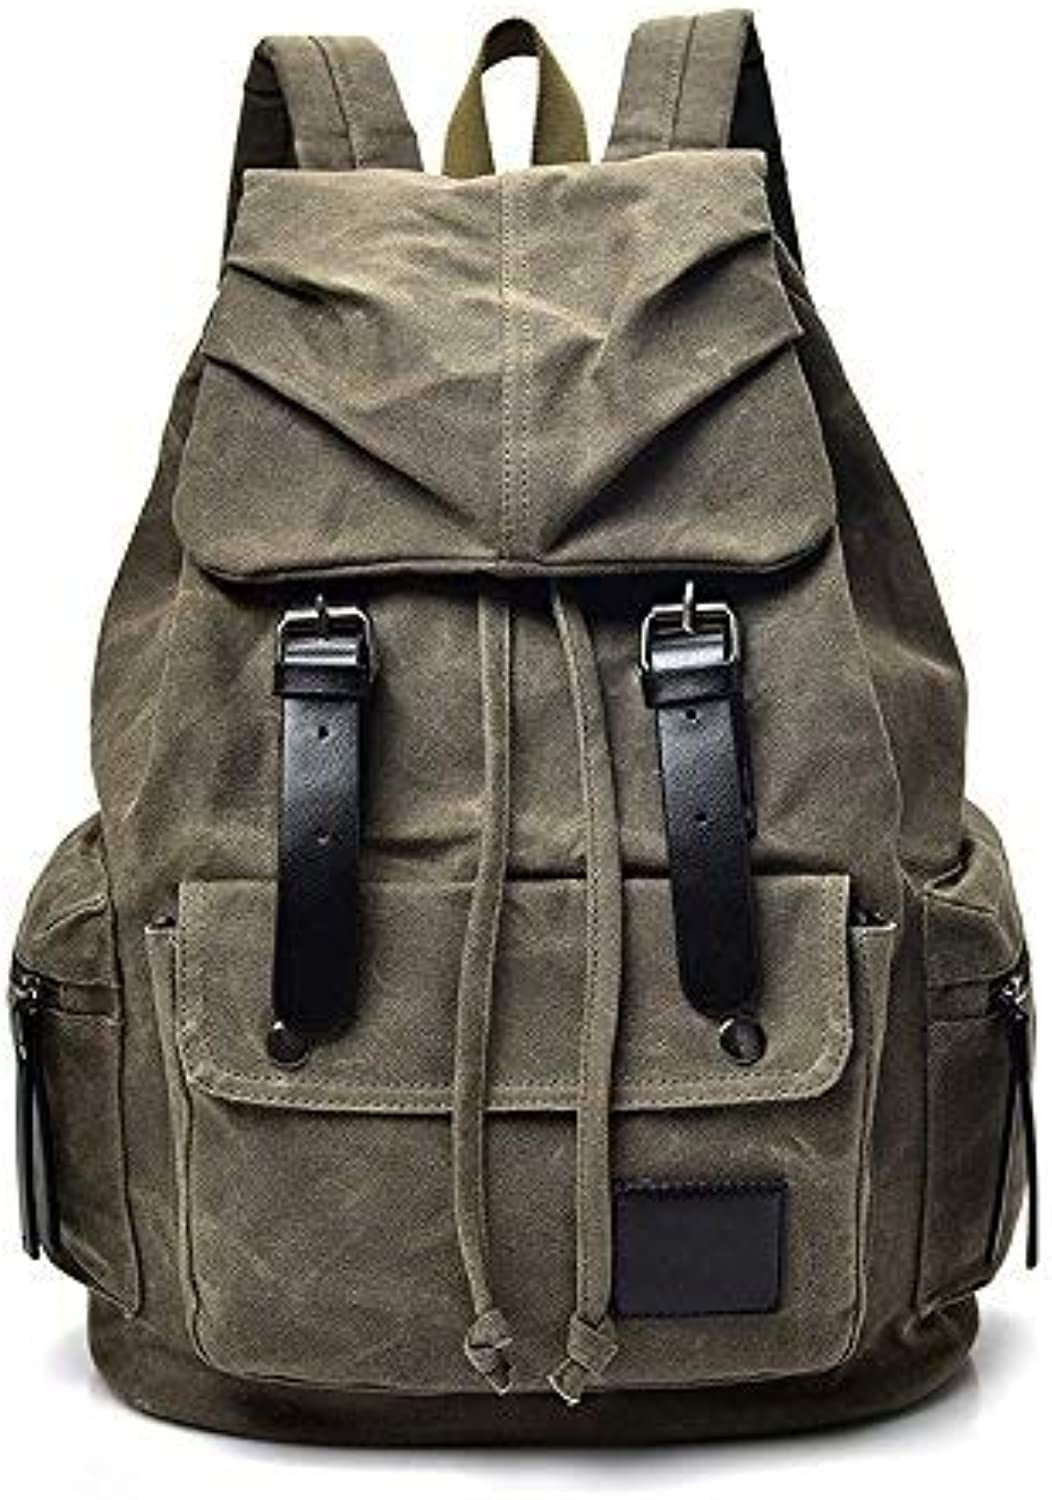 bc768f9bb39ff Anab Backpack Computer Backpack Travel Bag for Business College ...